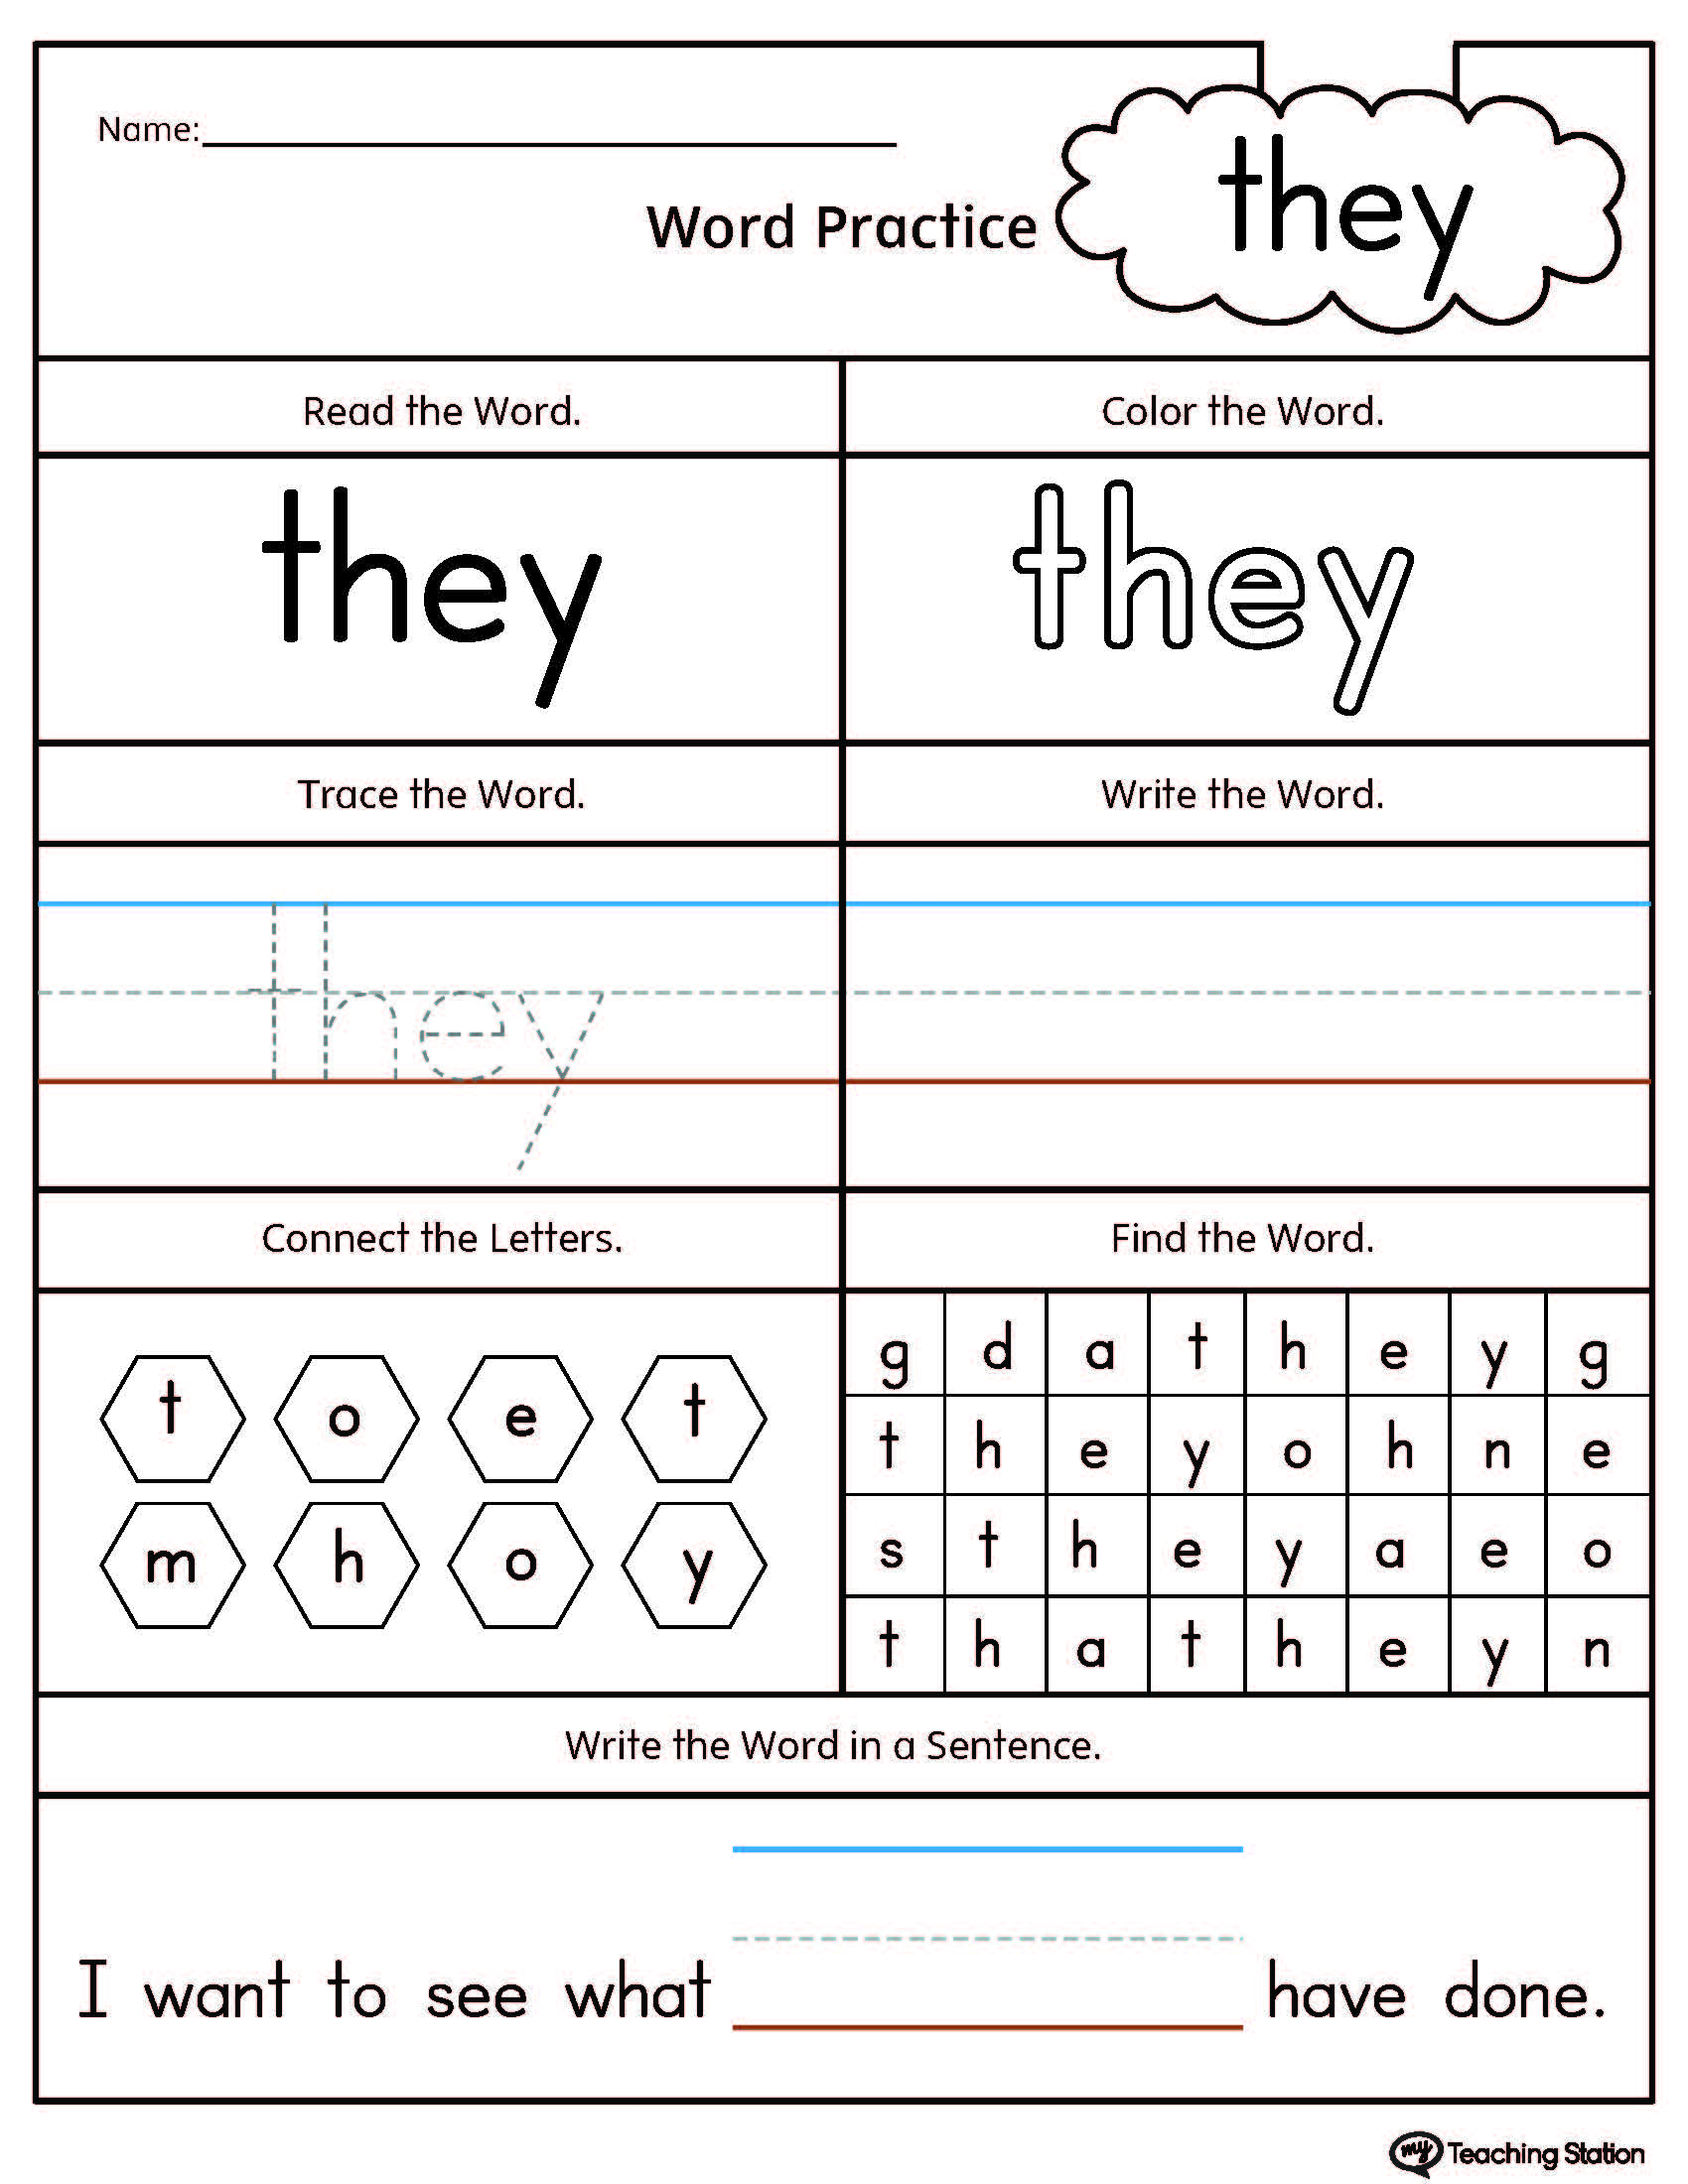 worksheet Site Word Worksheets high frequency words printable worksheets myteachingstation com word they worksheet